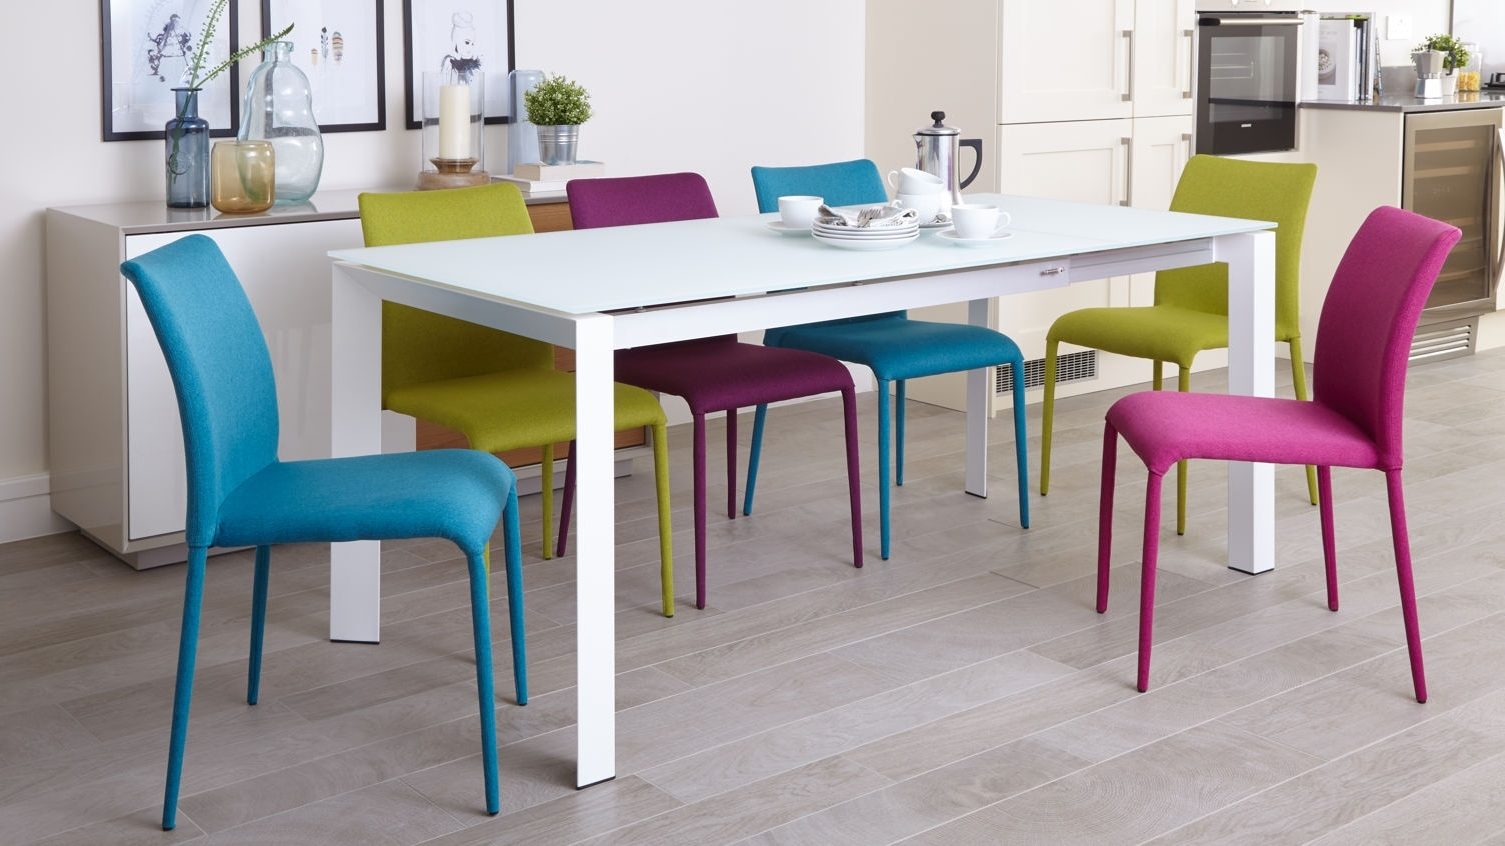 Smoked Glass Dining Tables And Chairs Throughout Favorite White Frosted Glass Dining Table (View 21 of 25)